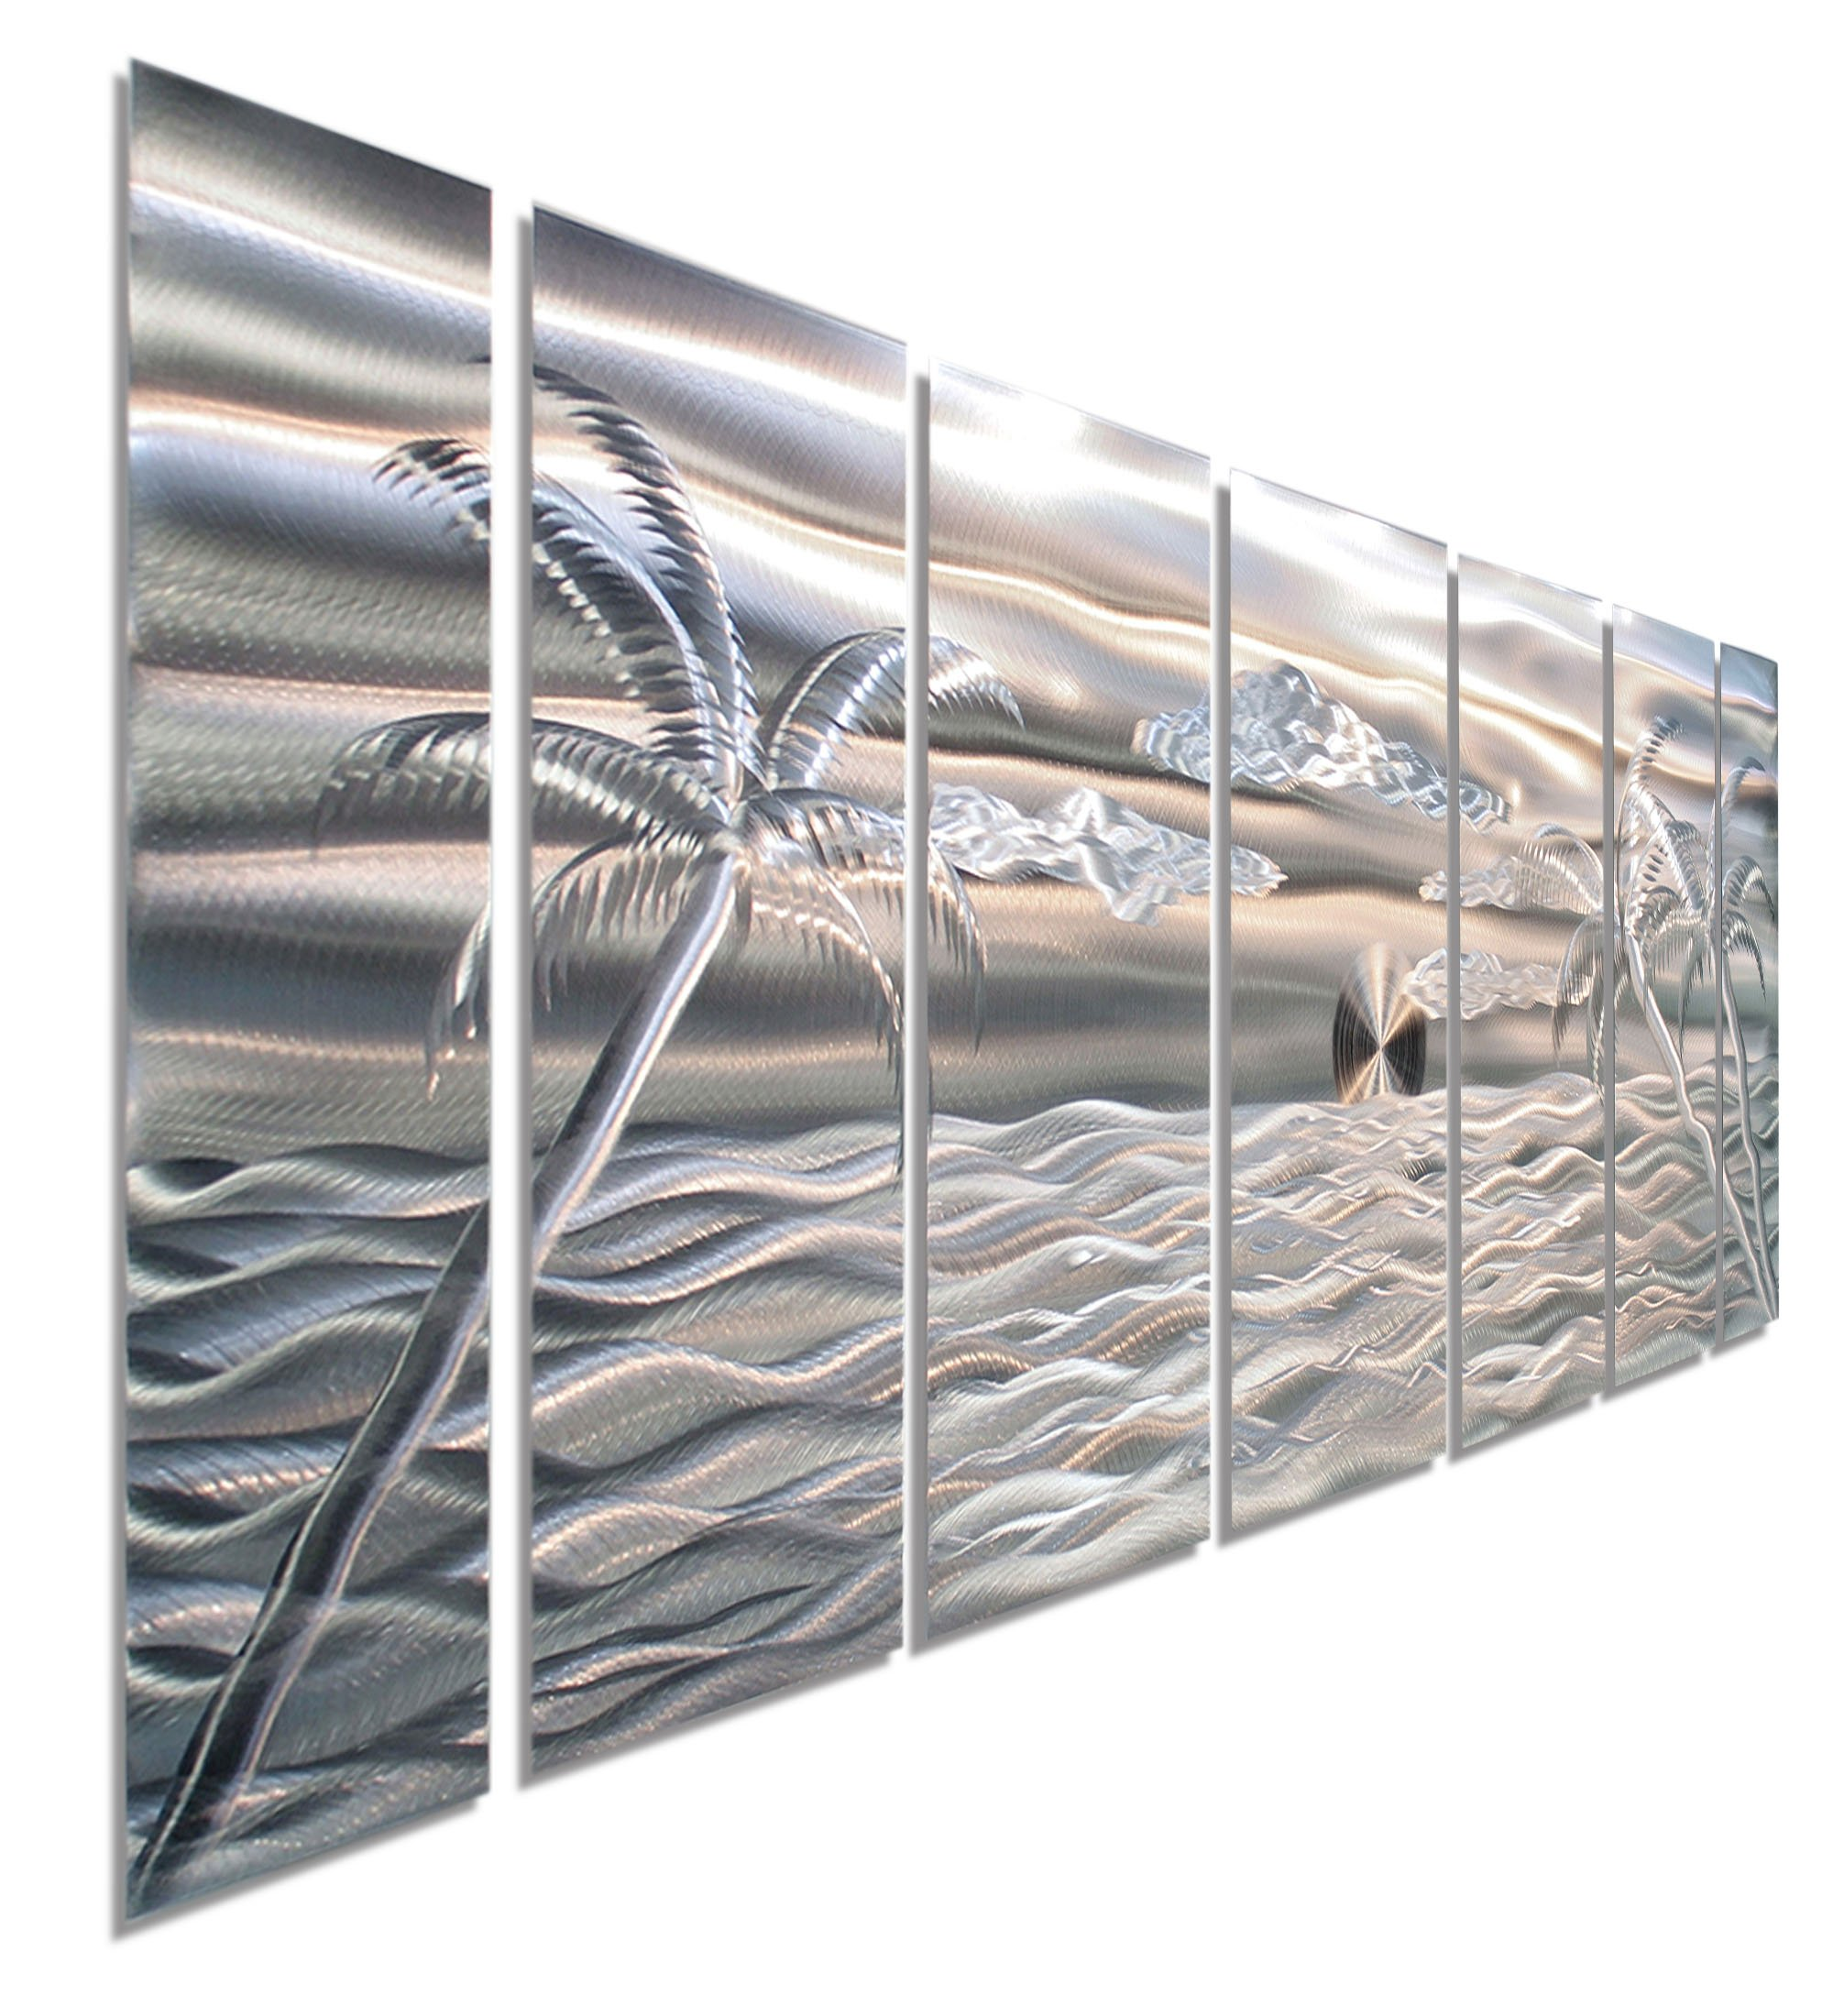 Large Silver Palm Tree Metal Wall Art, 68'' x 24'', Tropical Wall Decor, Modern Nautical Decor by Jon Allen Metal Art - Castaway by Statements2000